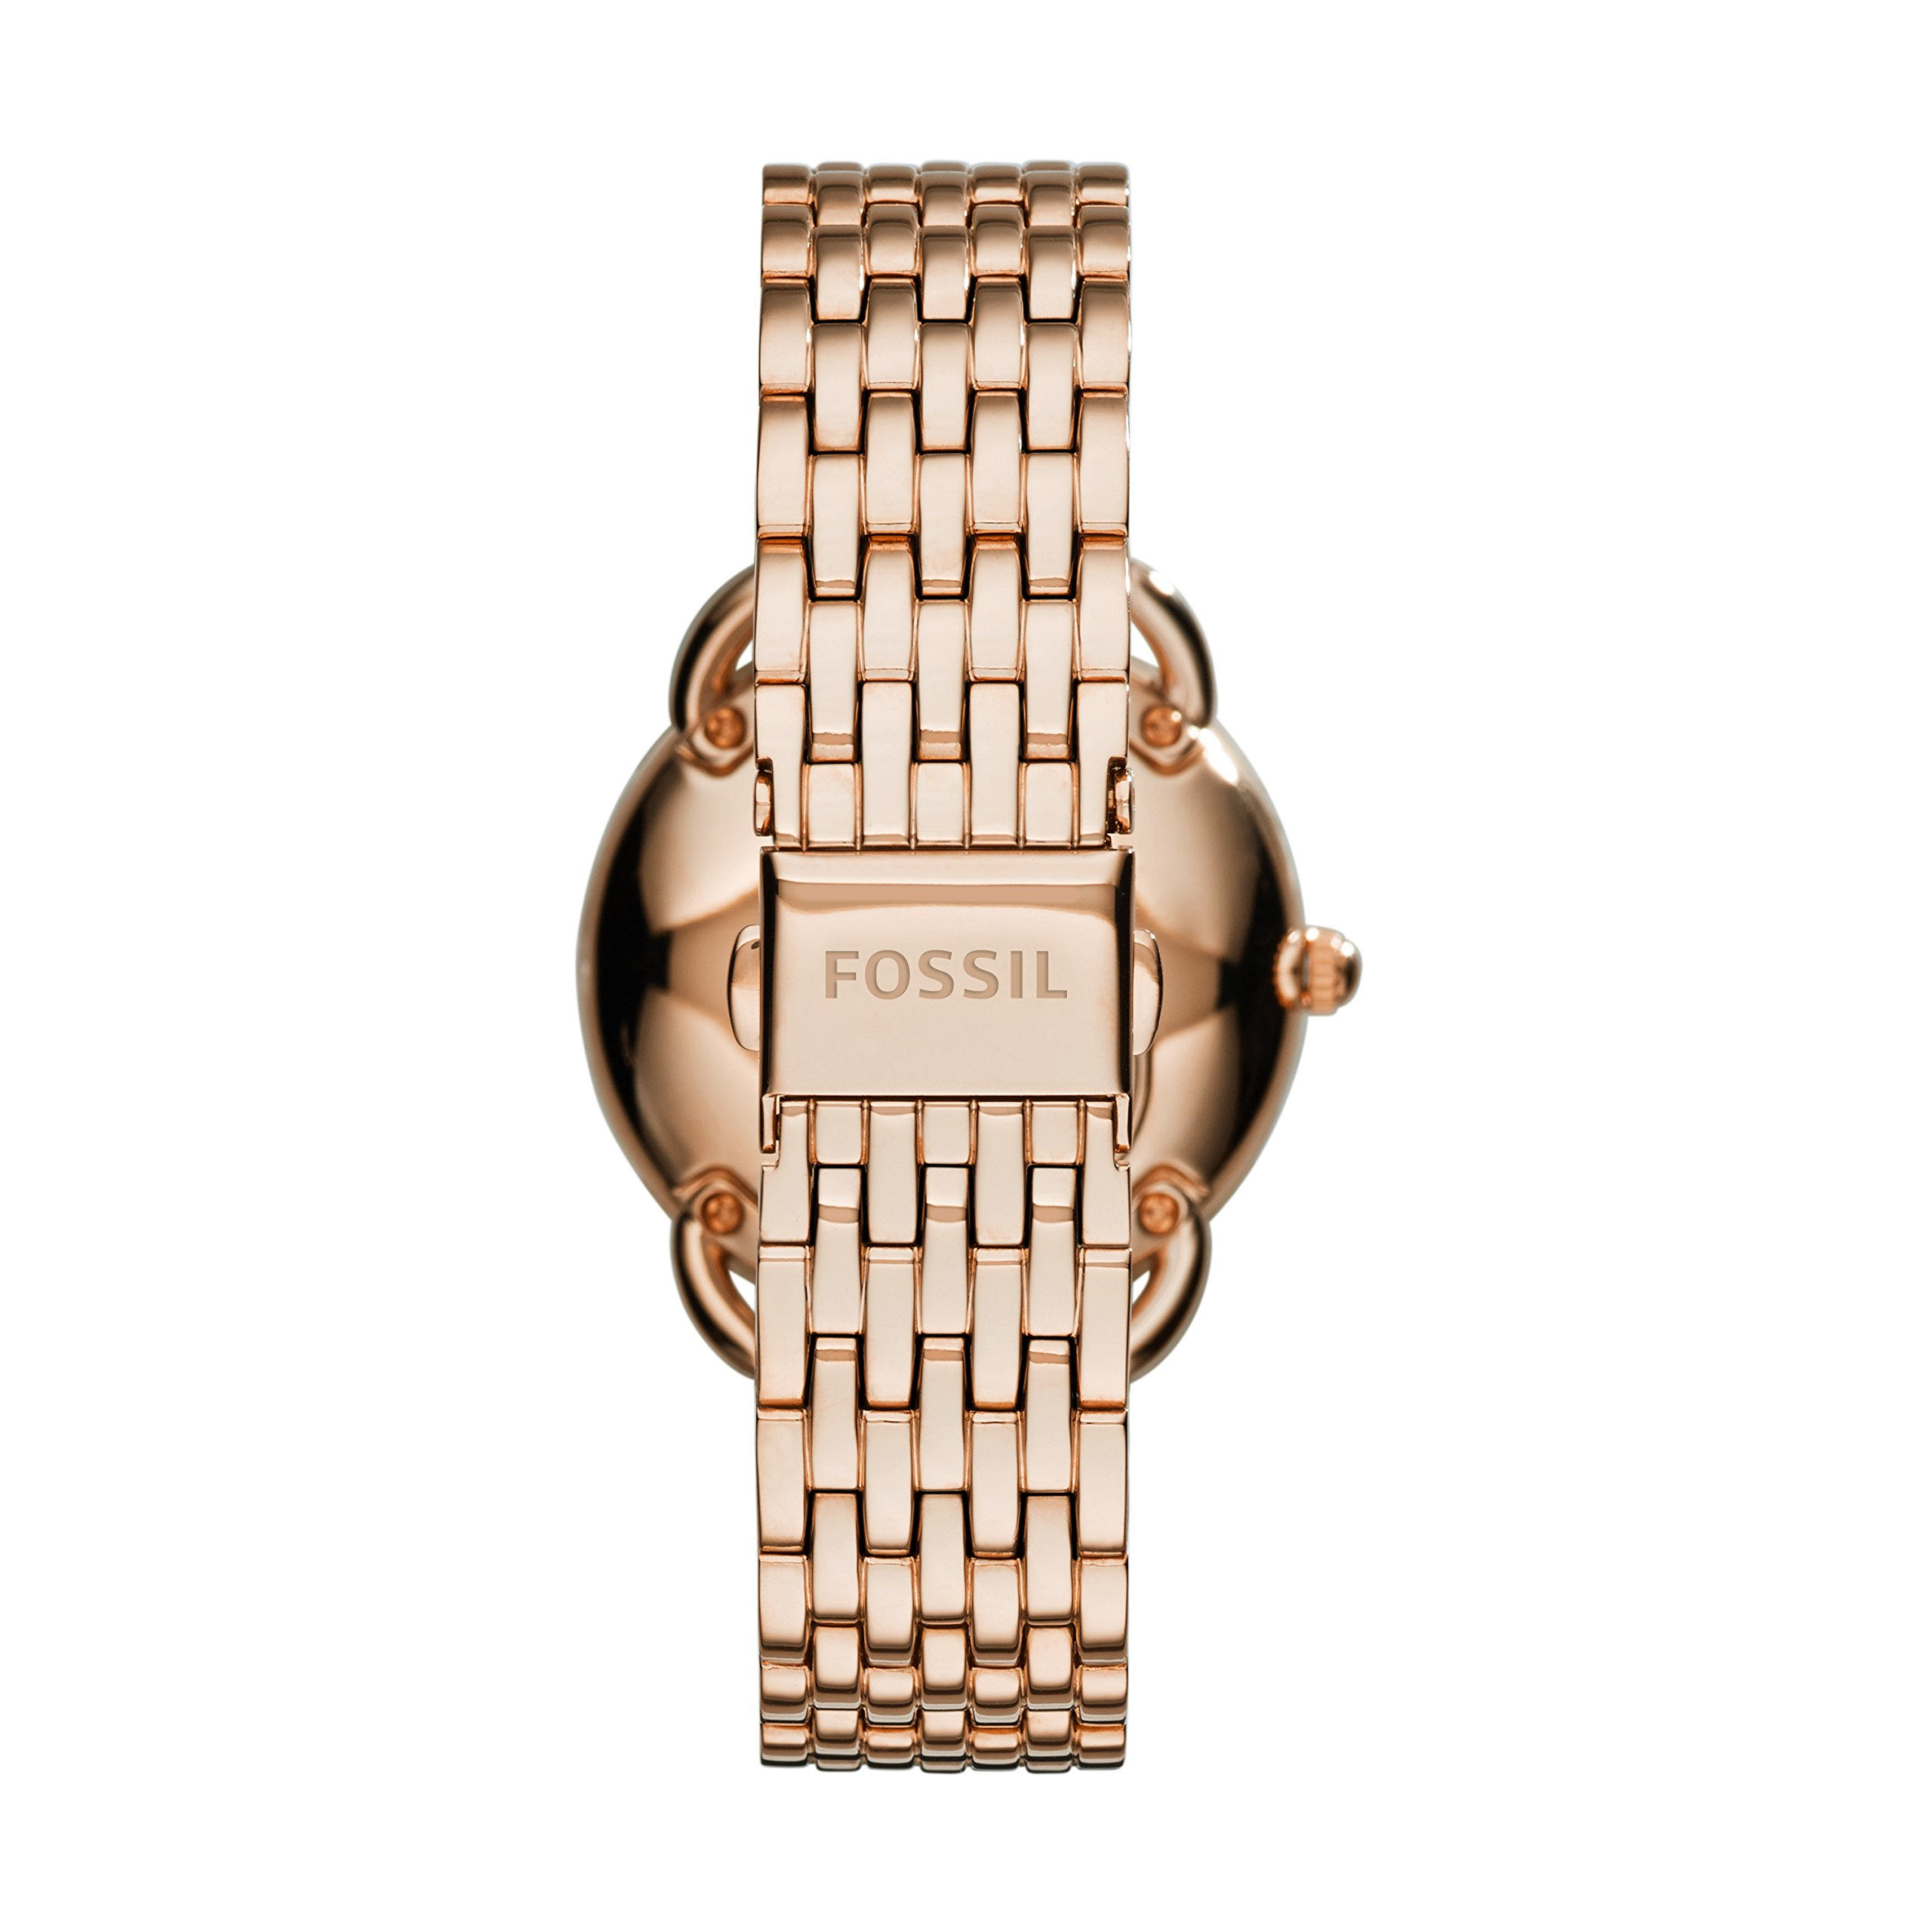 Fossil Women's Tailor Quartz Stainless Steel Dress Watch, Color: Rose Gold-Tone (Model: ES3713) by Fossil (Image #4)